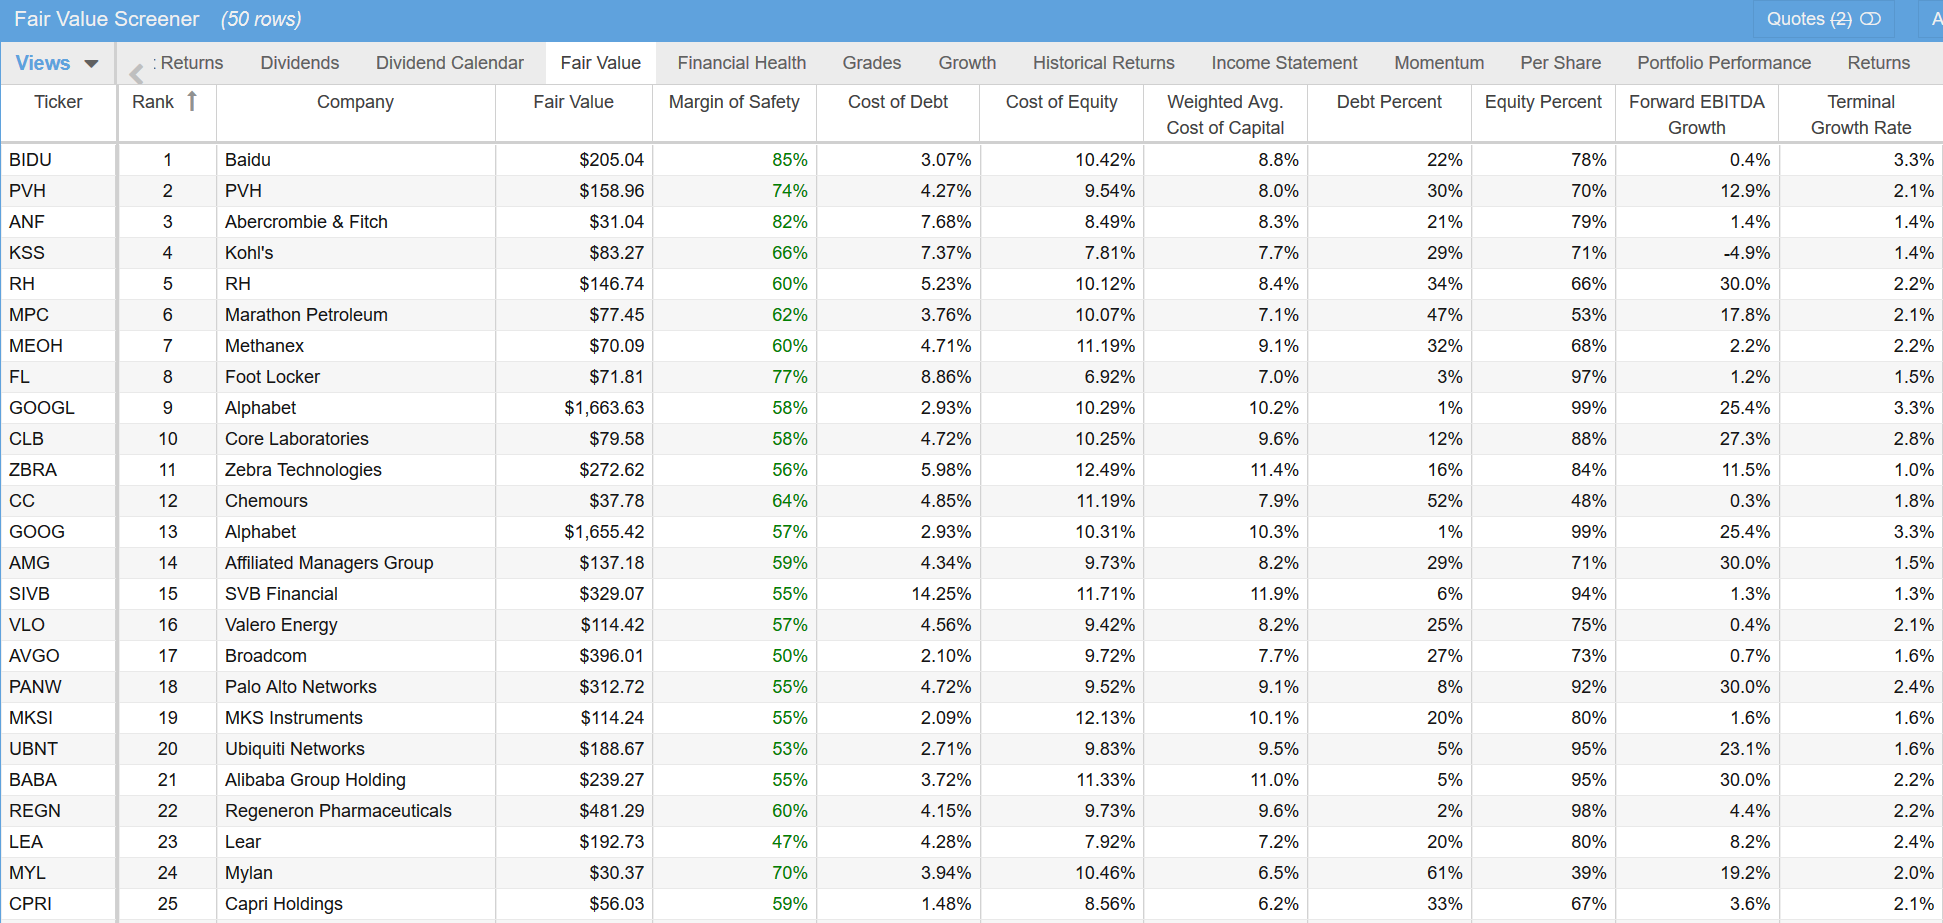 Fair Value Screener Results